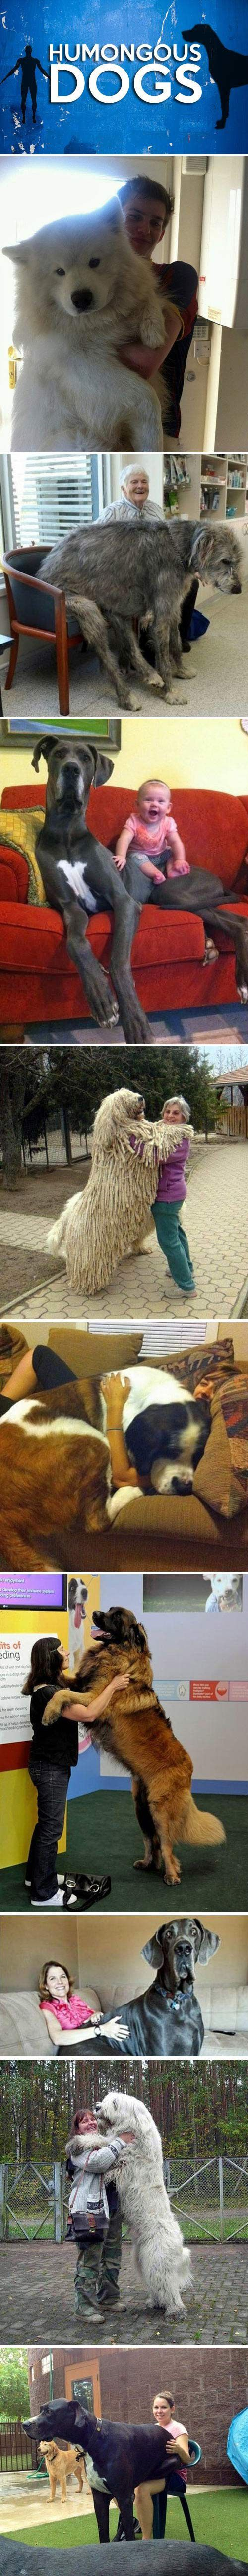 Humongous Dogs… I want them all!: